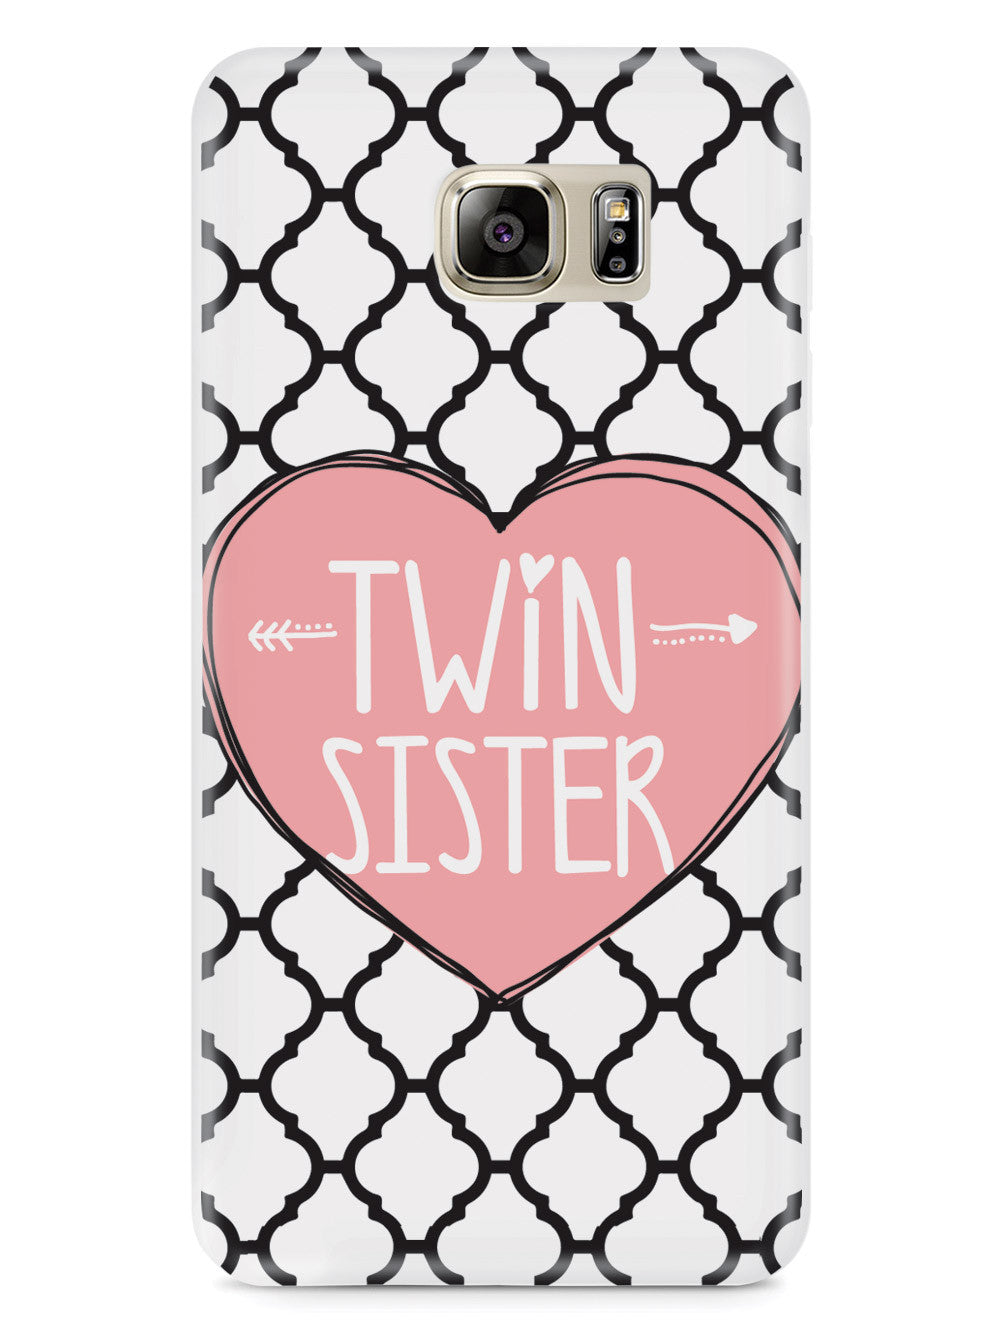 Sisterly Love - Twin Sister - Moroccan Case